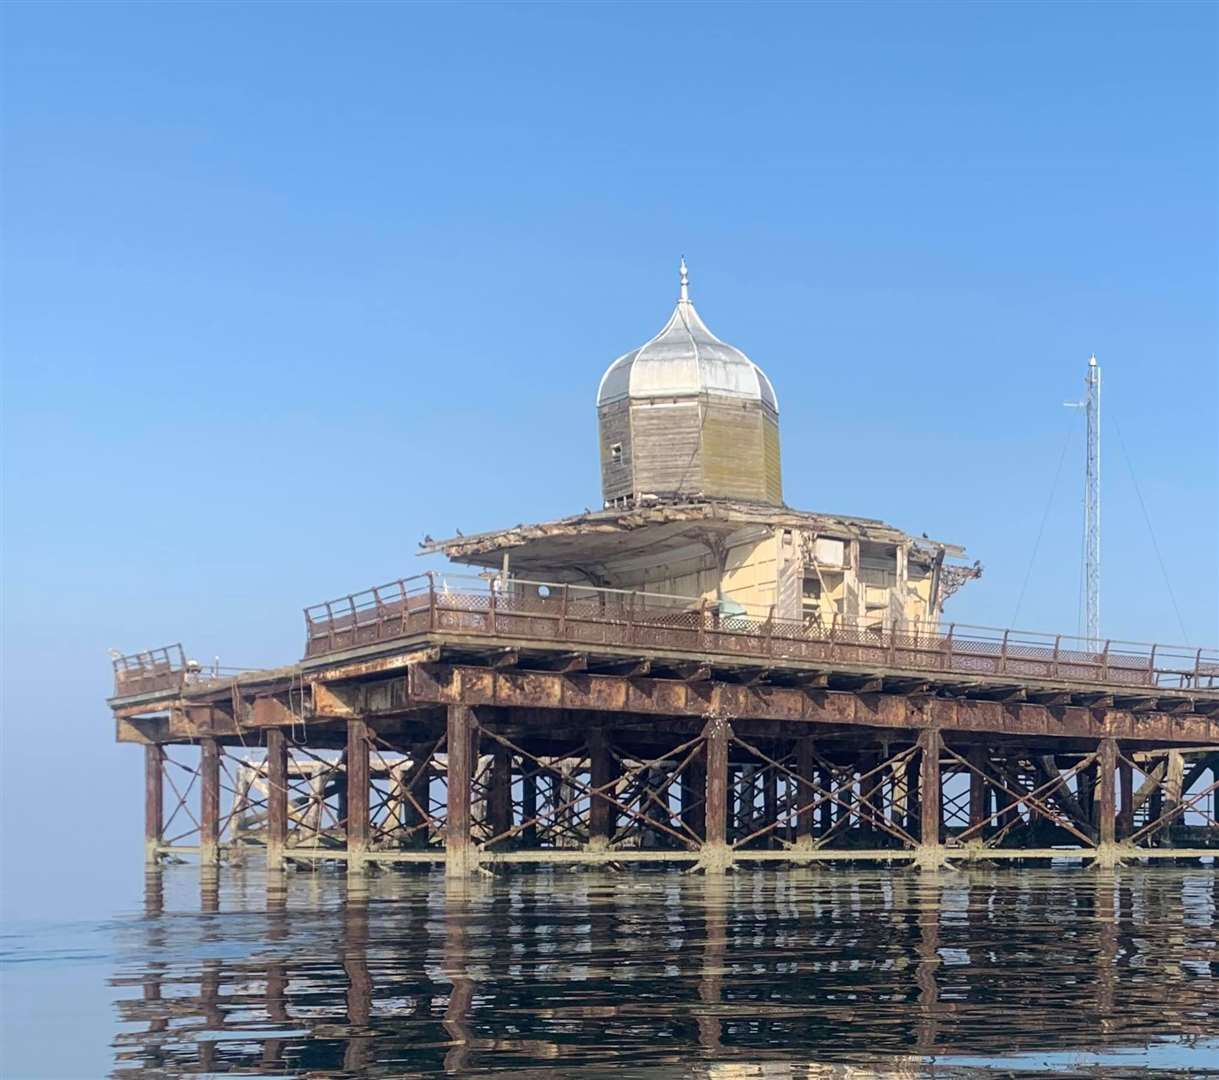 Sonja Earl believes more should be done to protect the pier head. Picture: Sonja Earl (16012222)